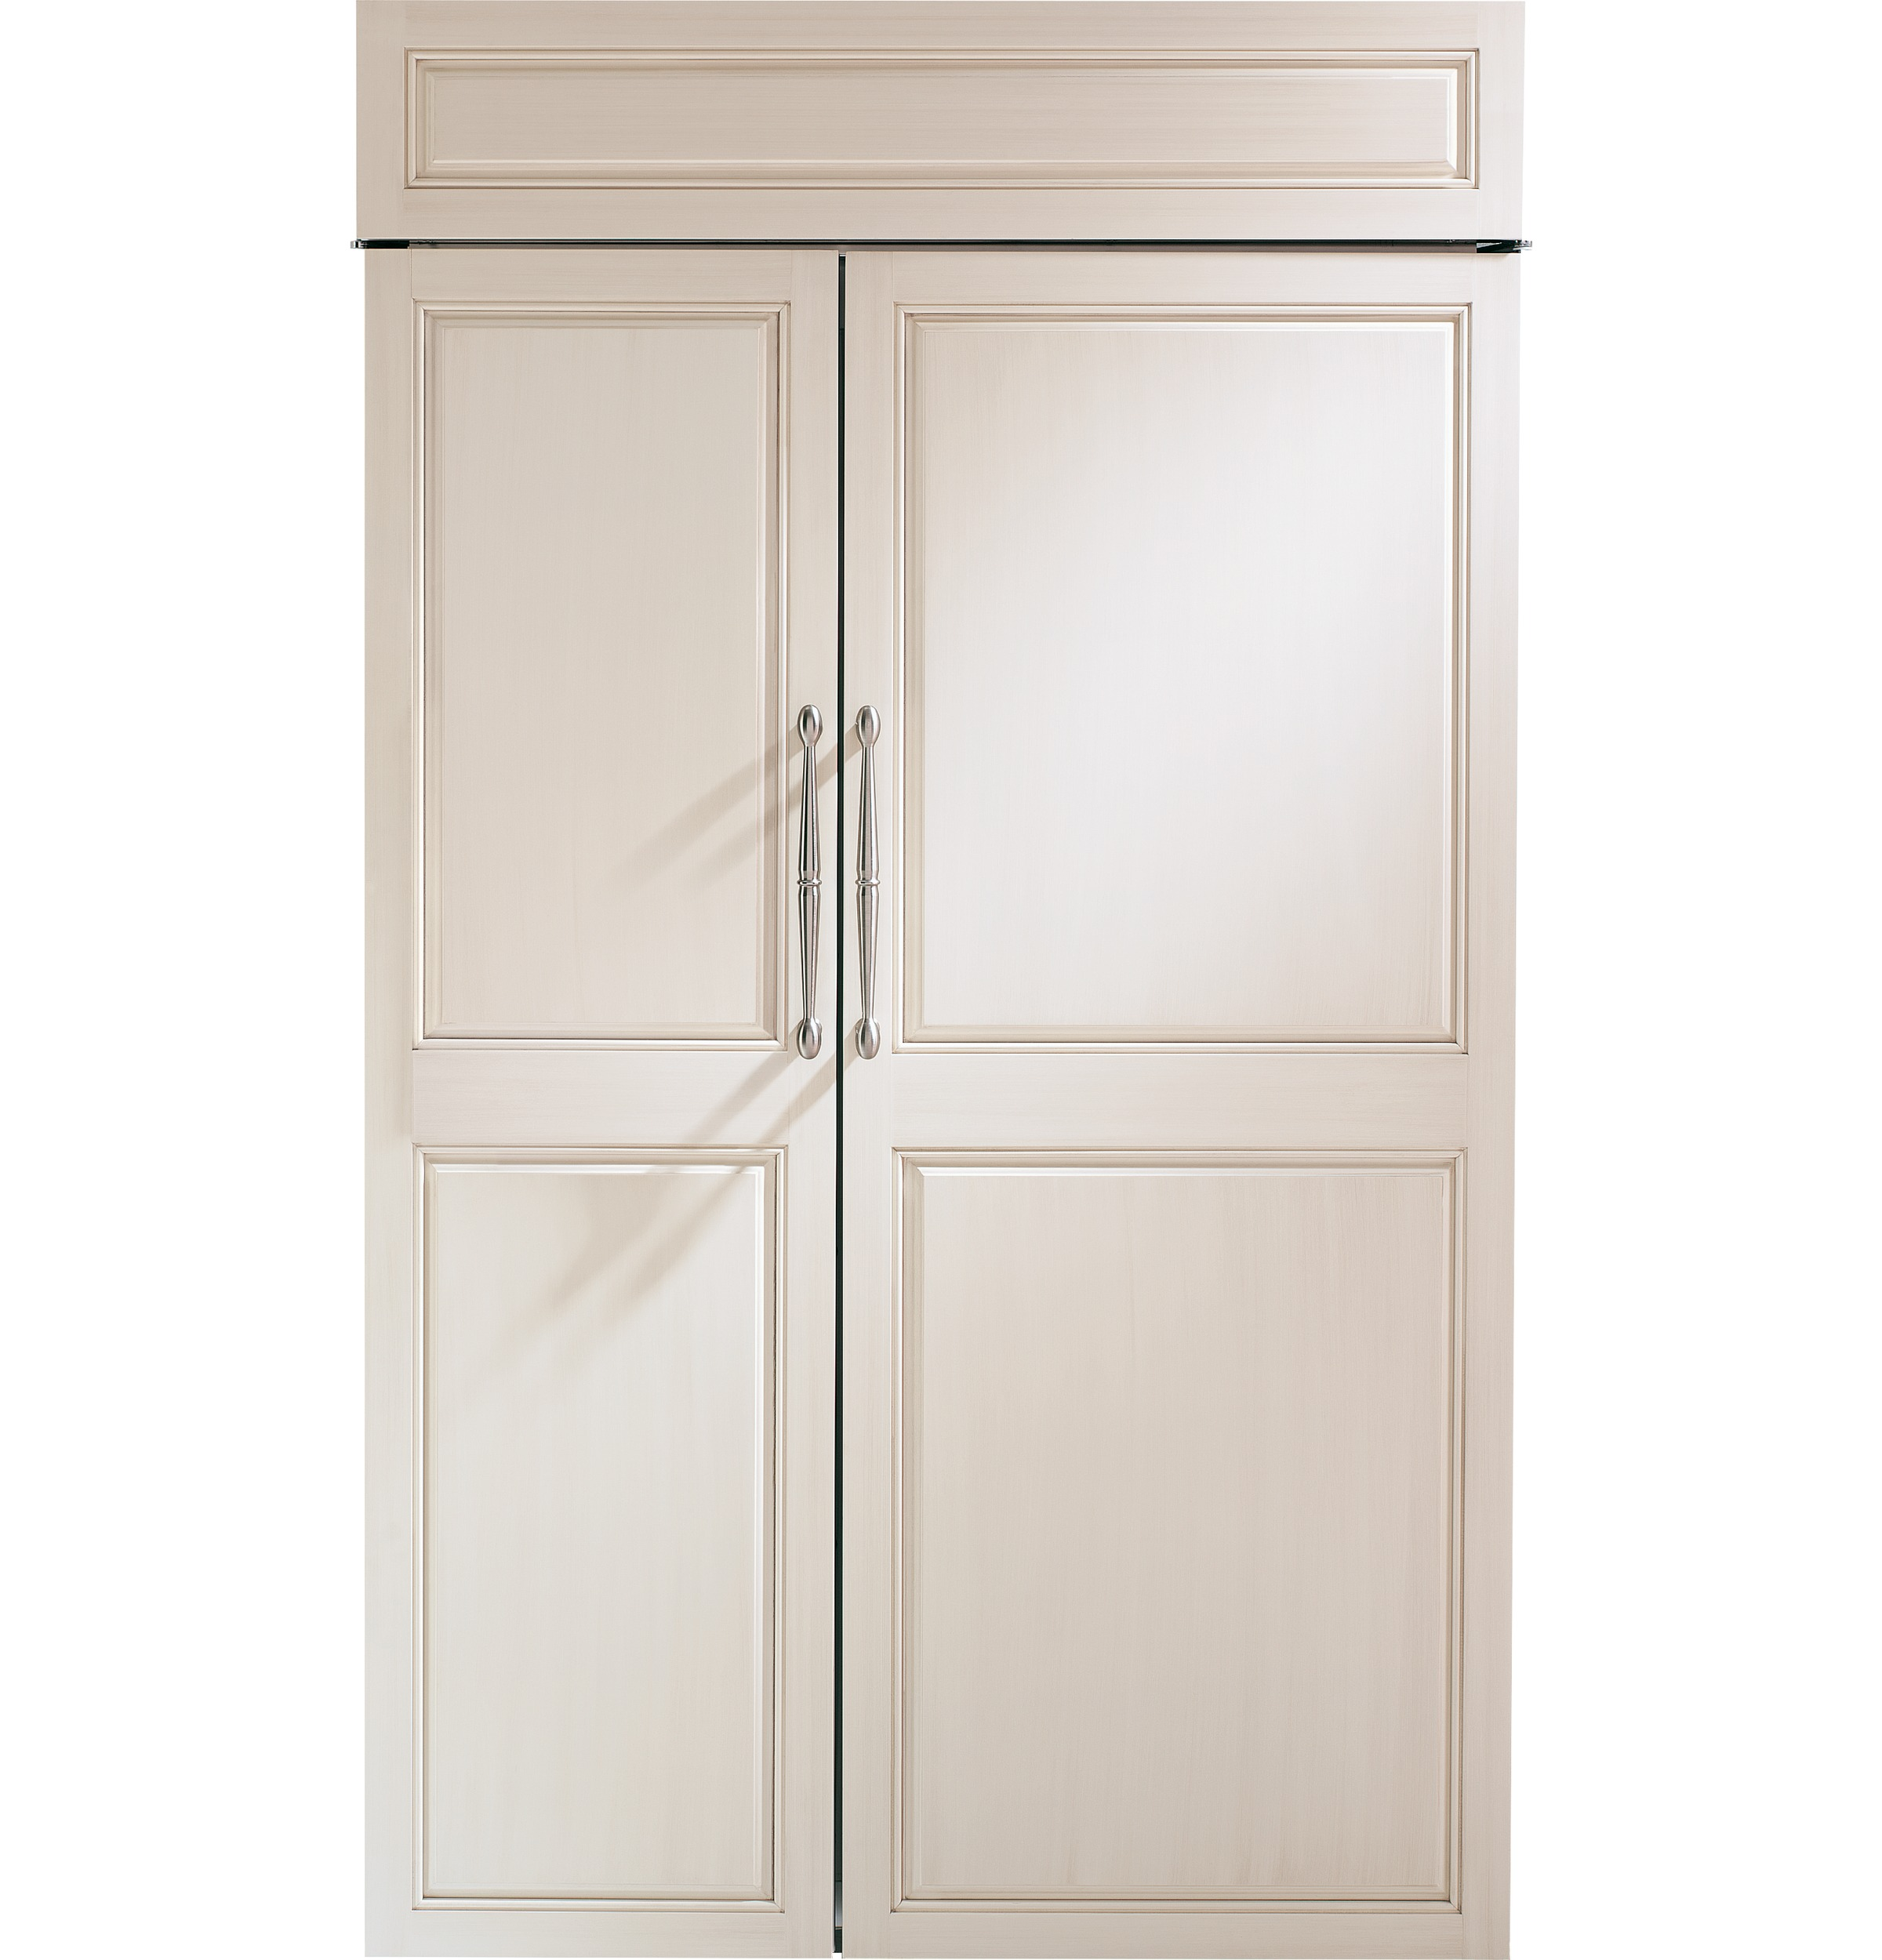 Zis480nk Monogram 48 Quot Built In Side By Side Refrigerator